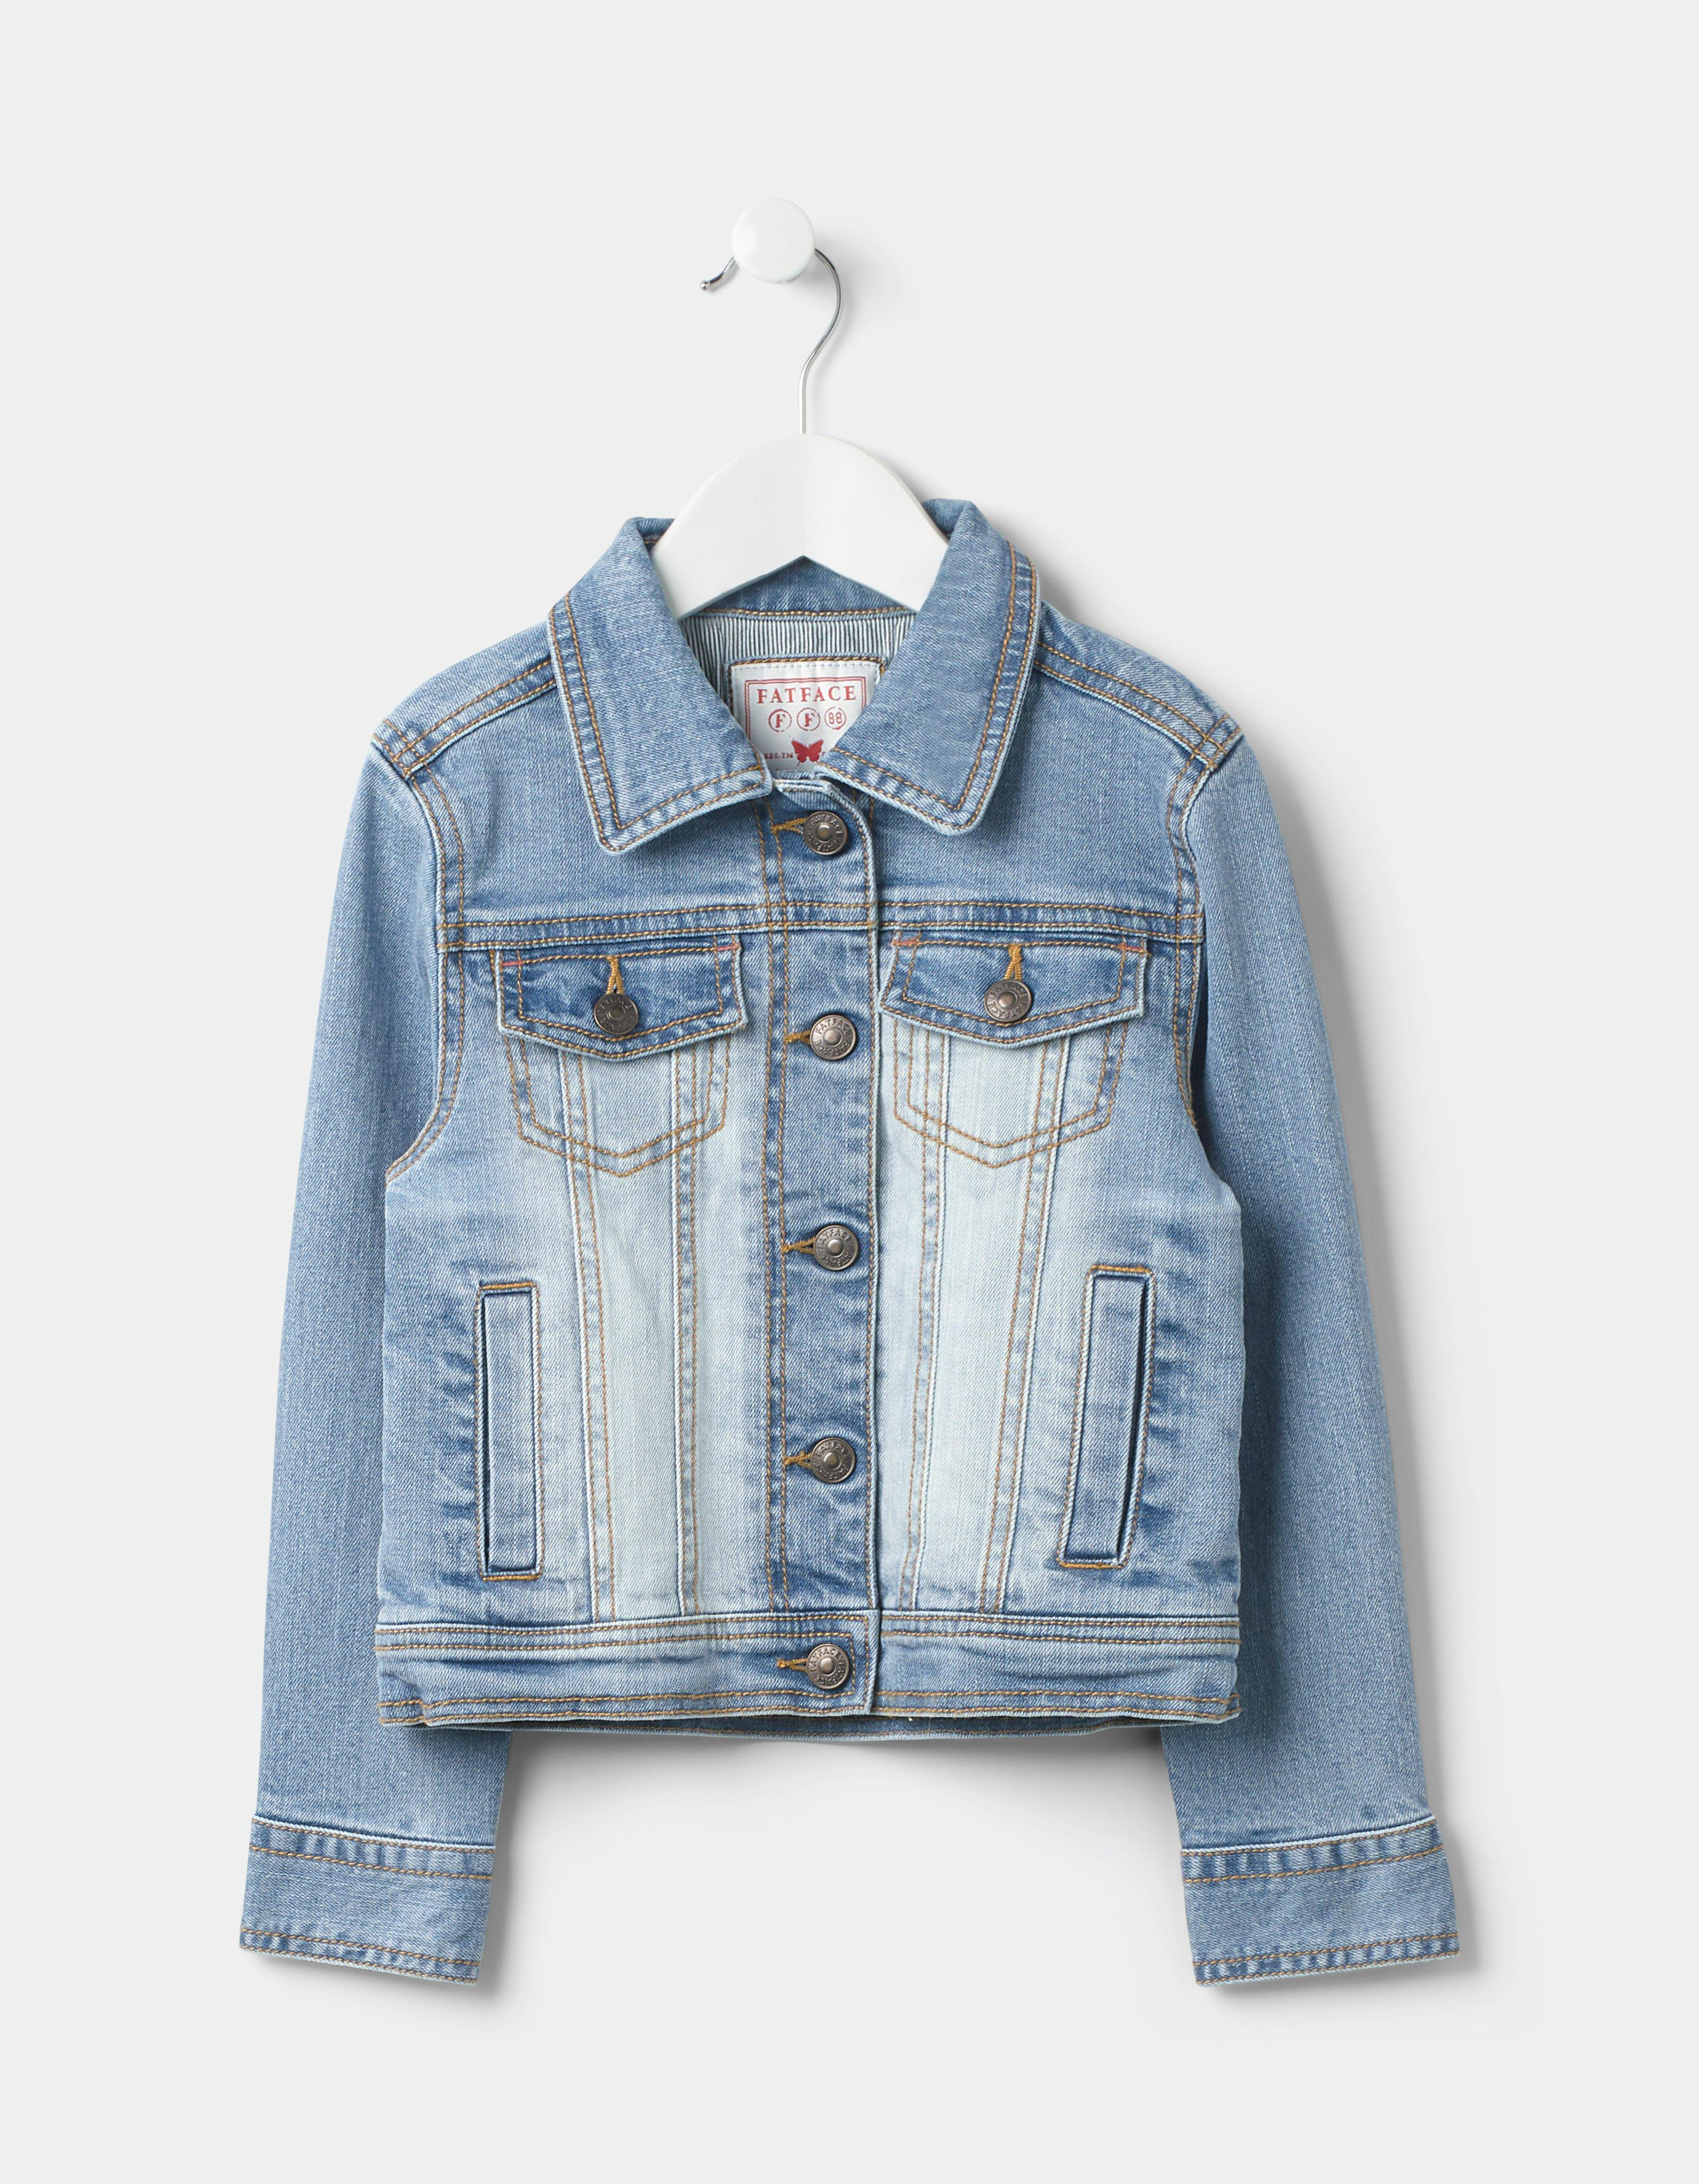 c7ad1a629 Light Wash Denim Jacket, Coats & Jackets | FatFace.com